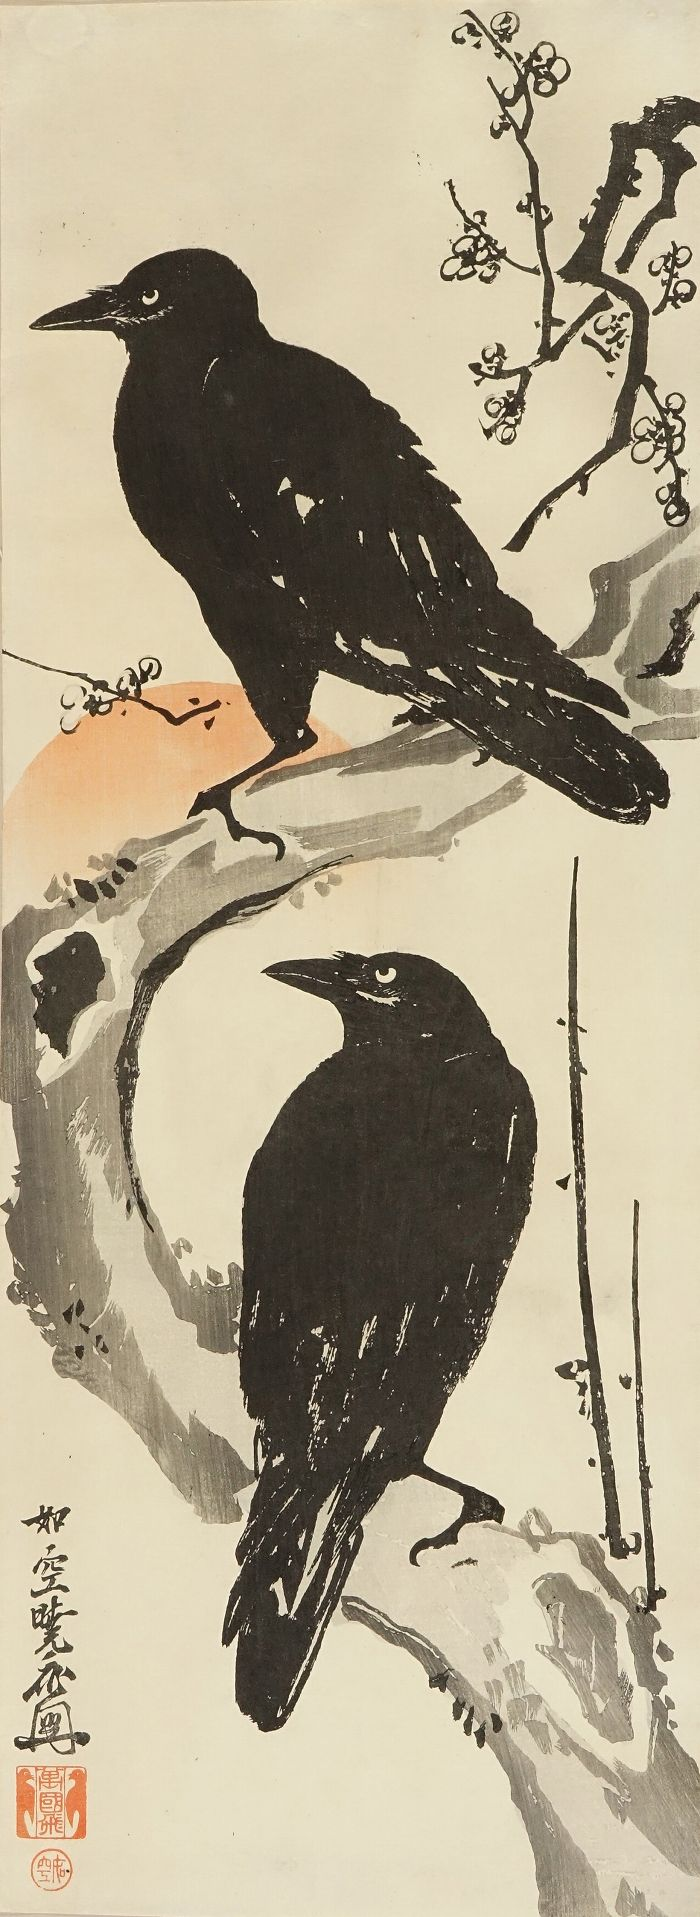 KYOSAI Two crows perched on a plum tree against setting sun